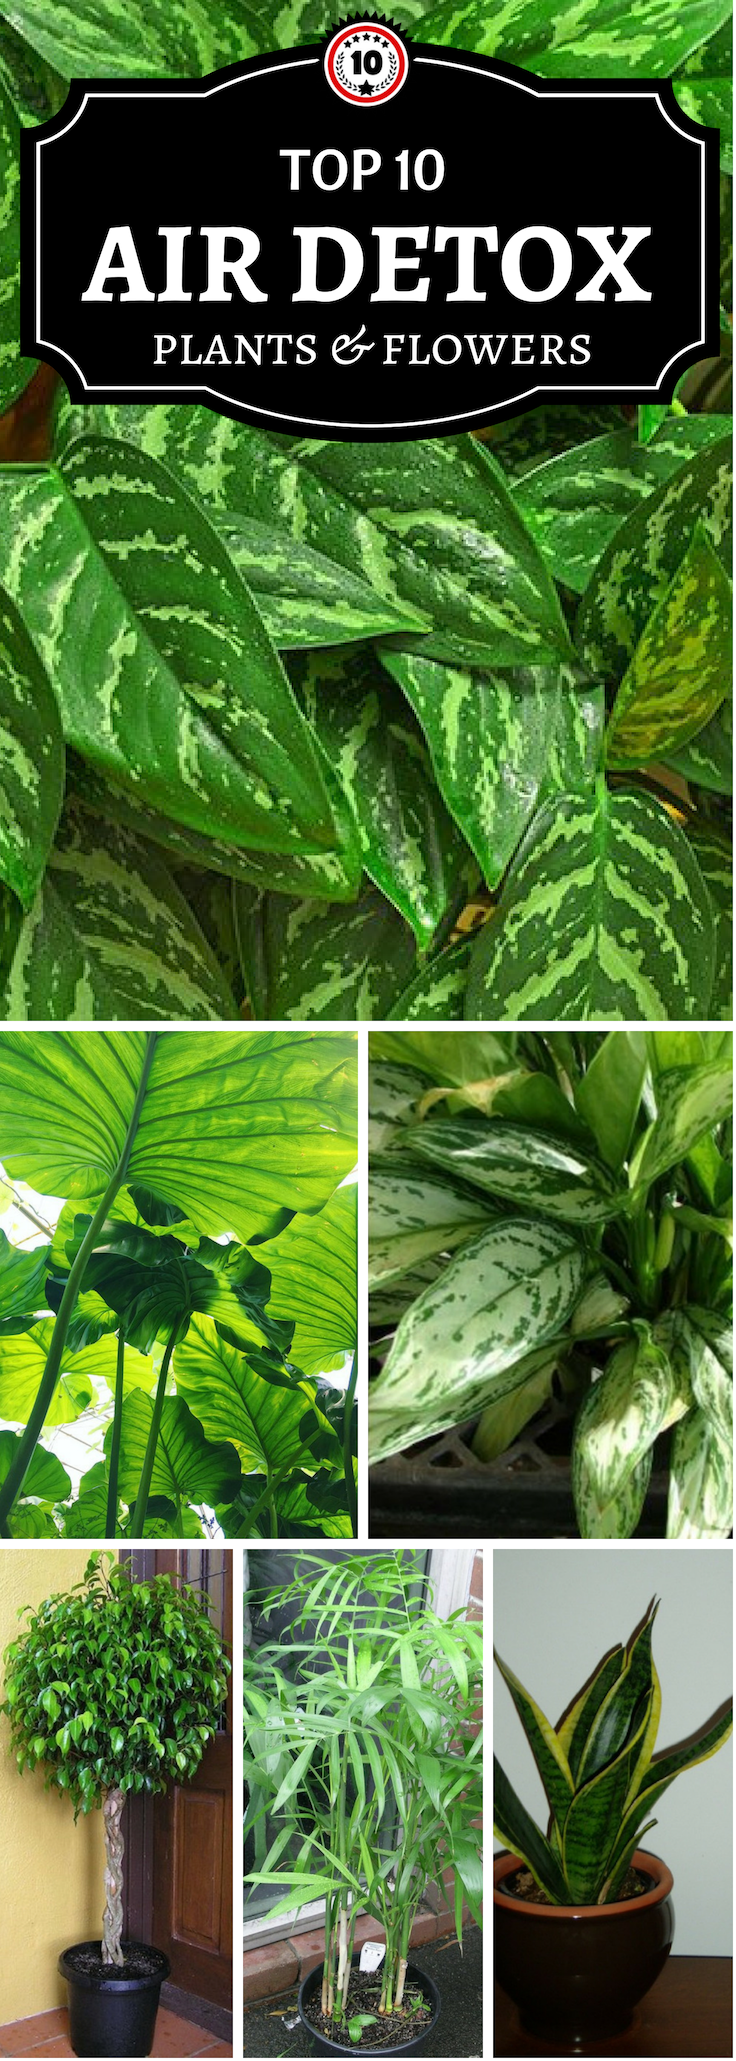 Top 10 Air Detoxifying Plants for Indoor Use | Bathroom ...